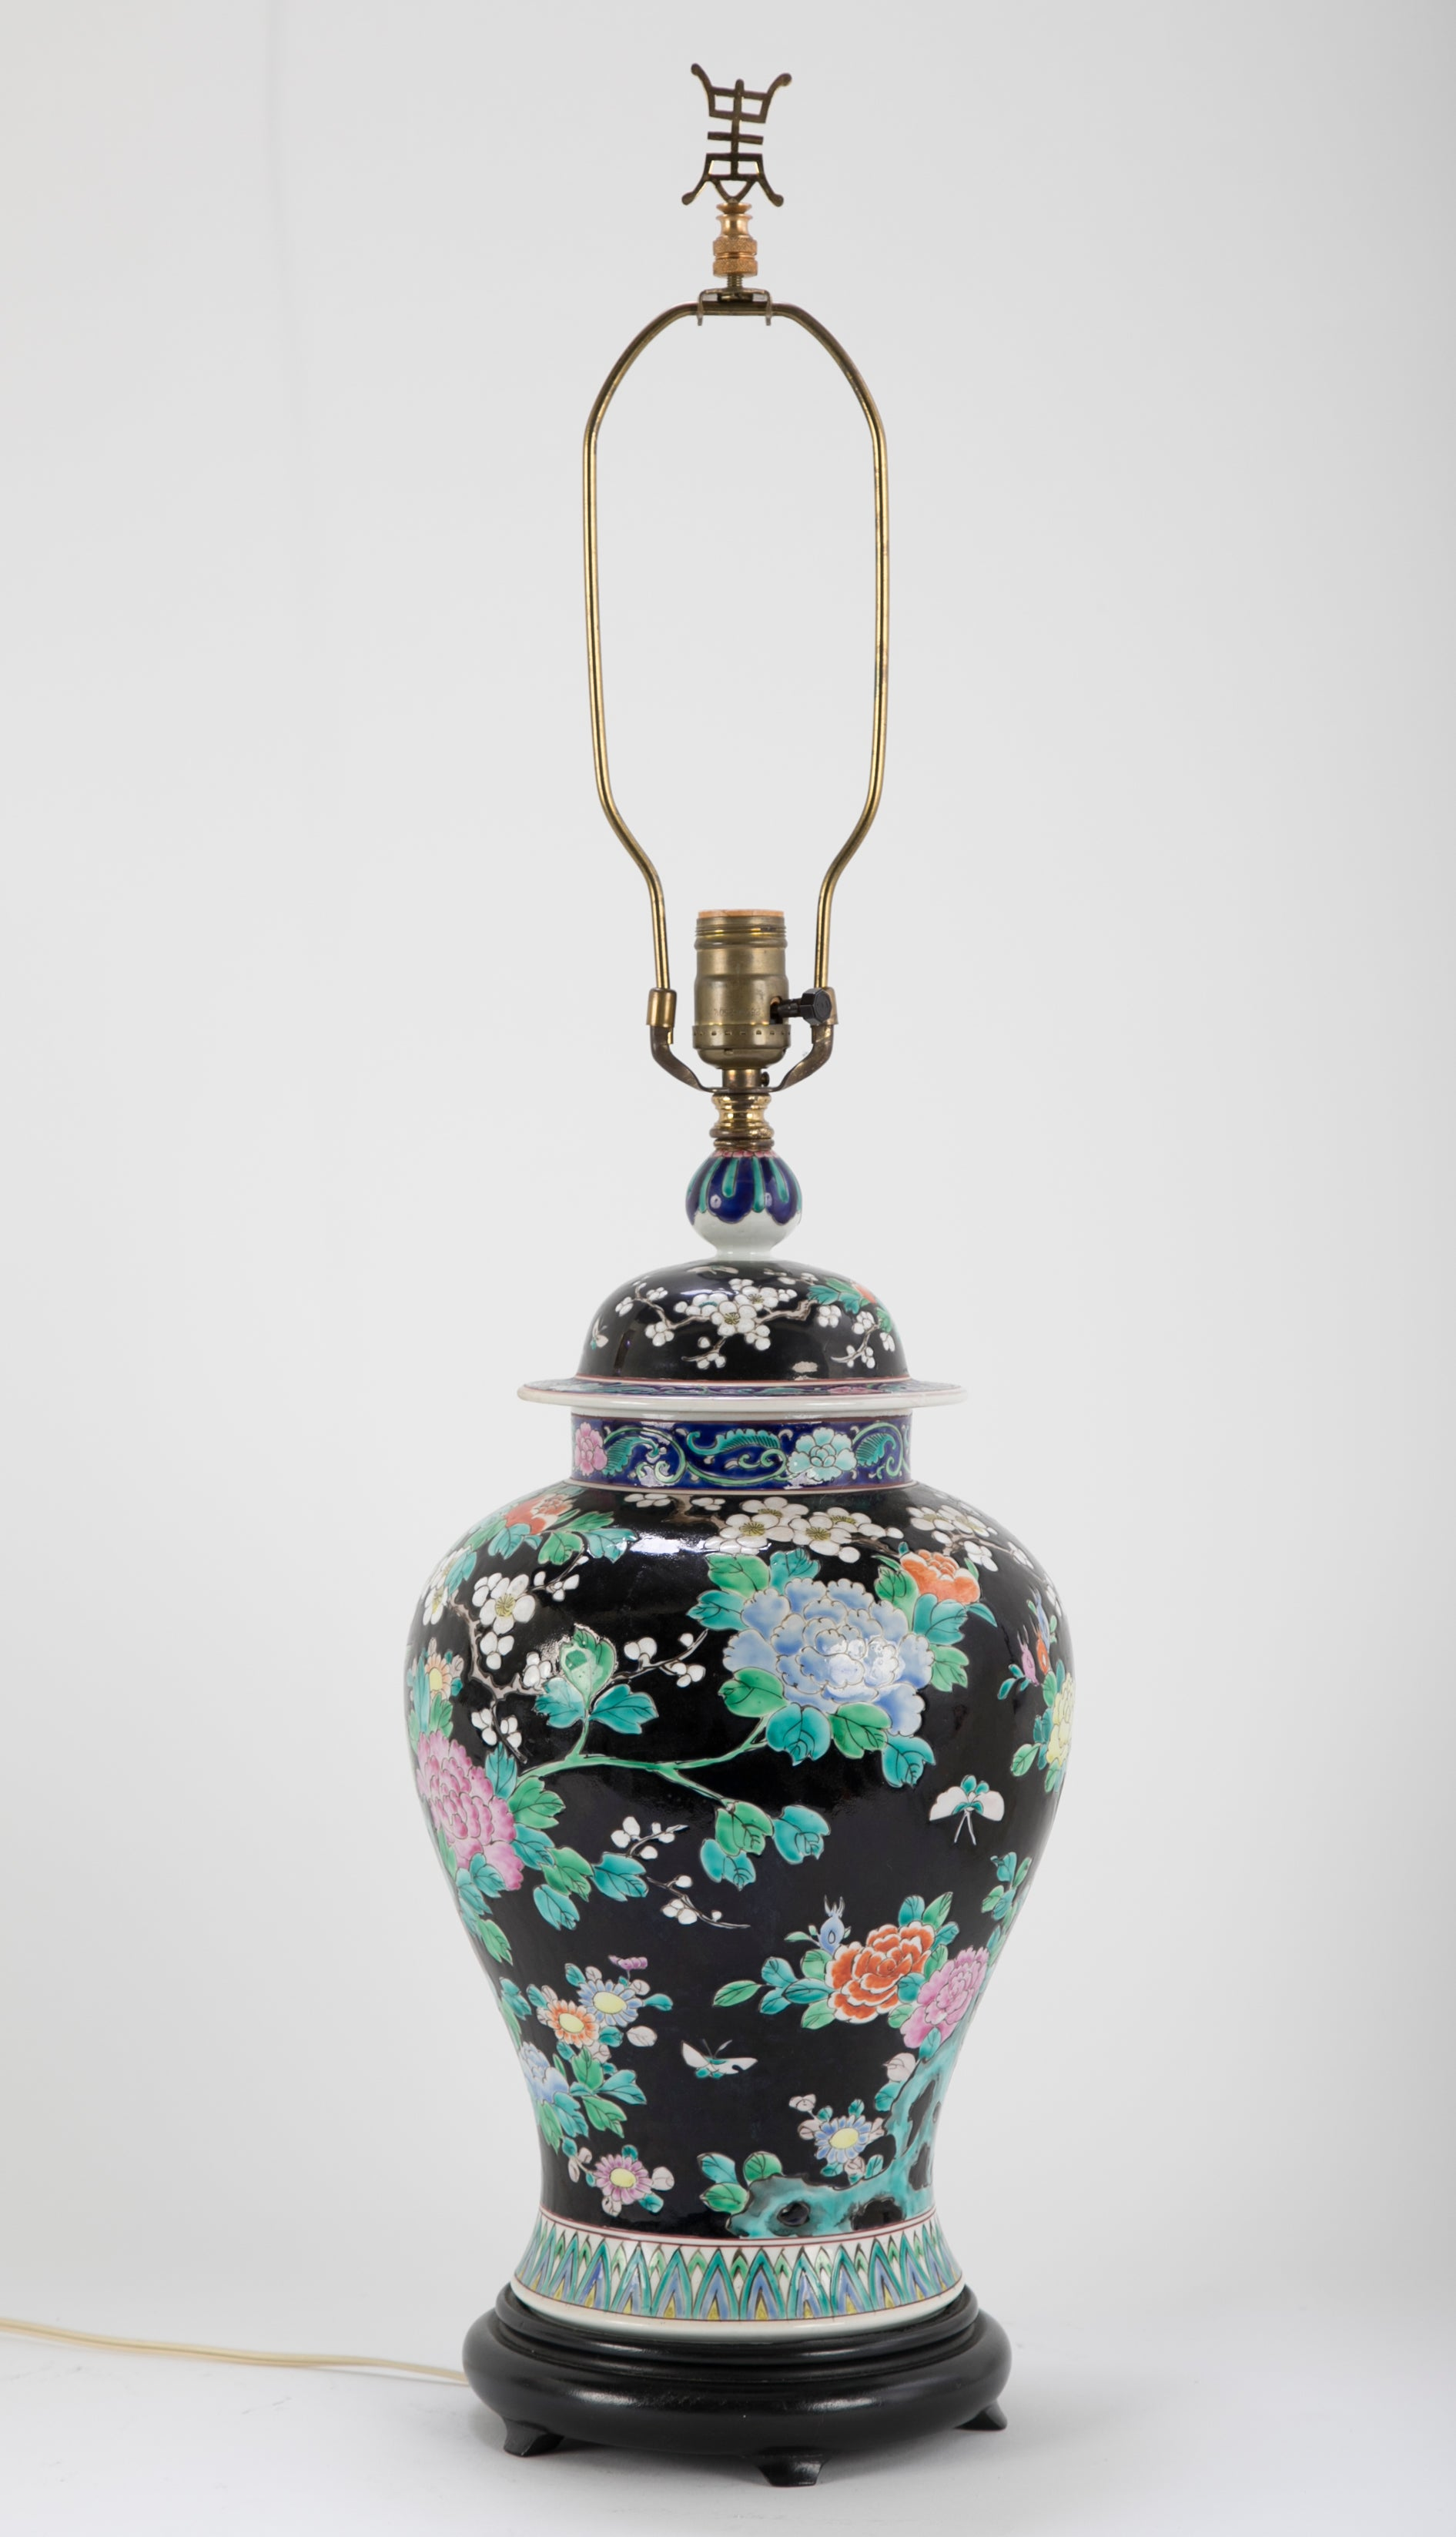 Chinese Famille Noire Lamp